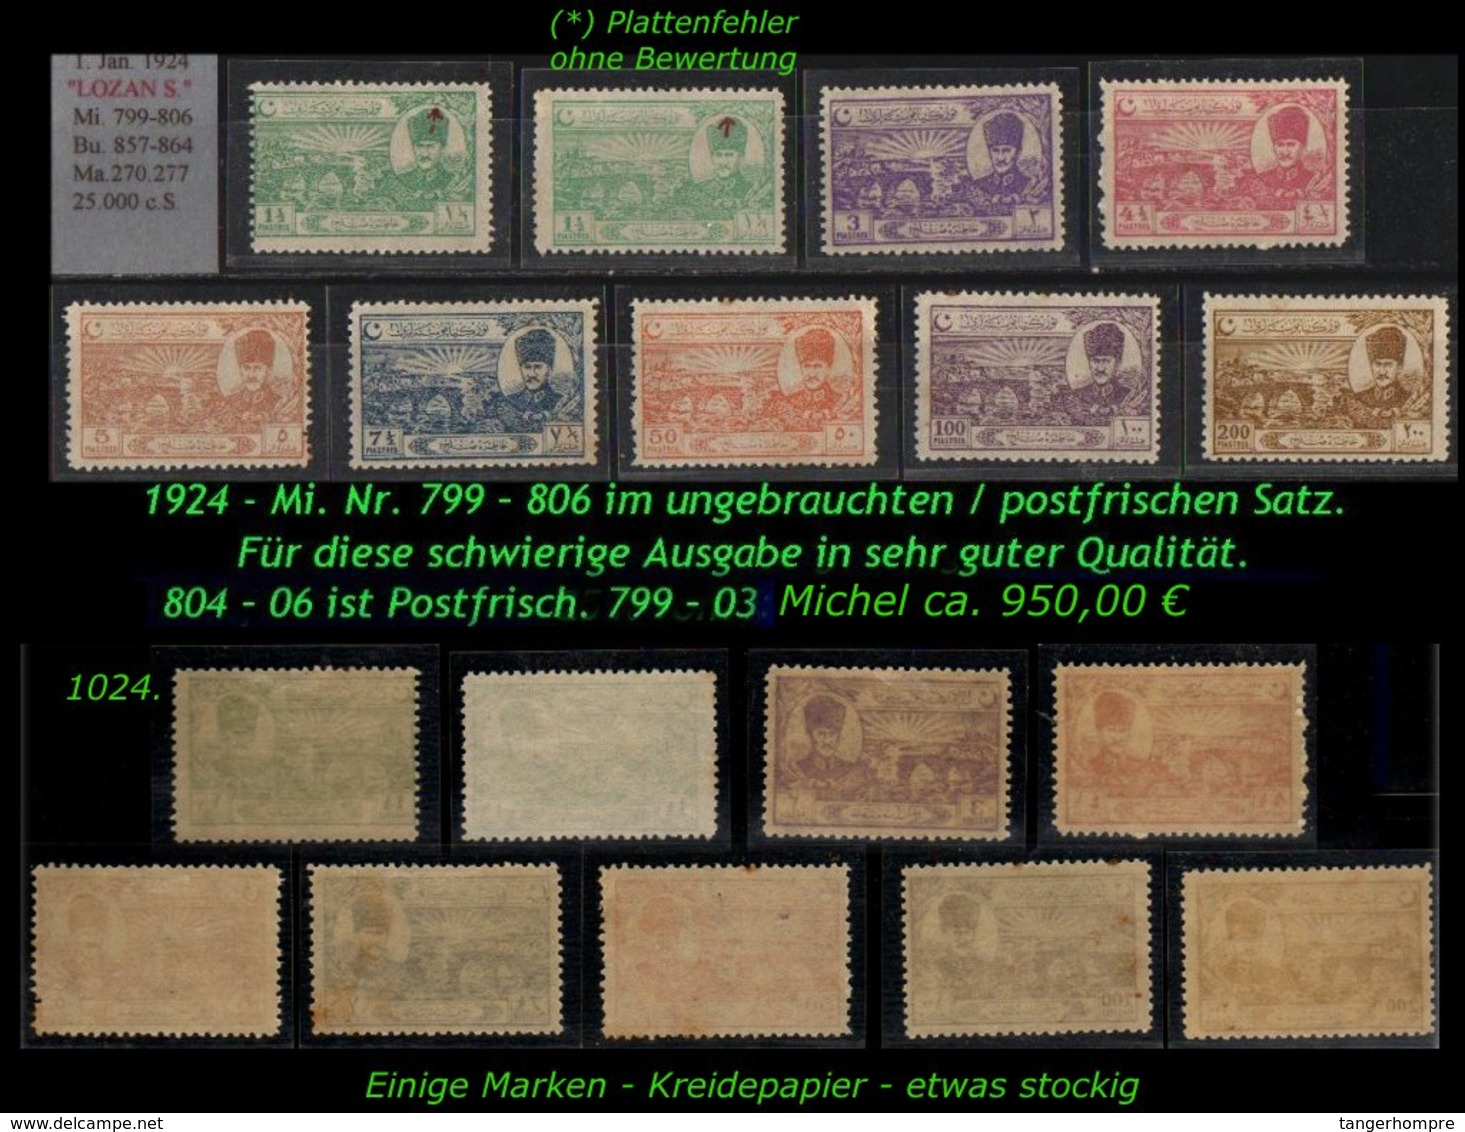 EARLY OTTOMAN SPECIALIZED FOR SPECIALIST, SEE...Mi. Nr. 799 - 806 - Nuevos